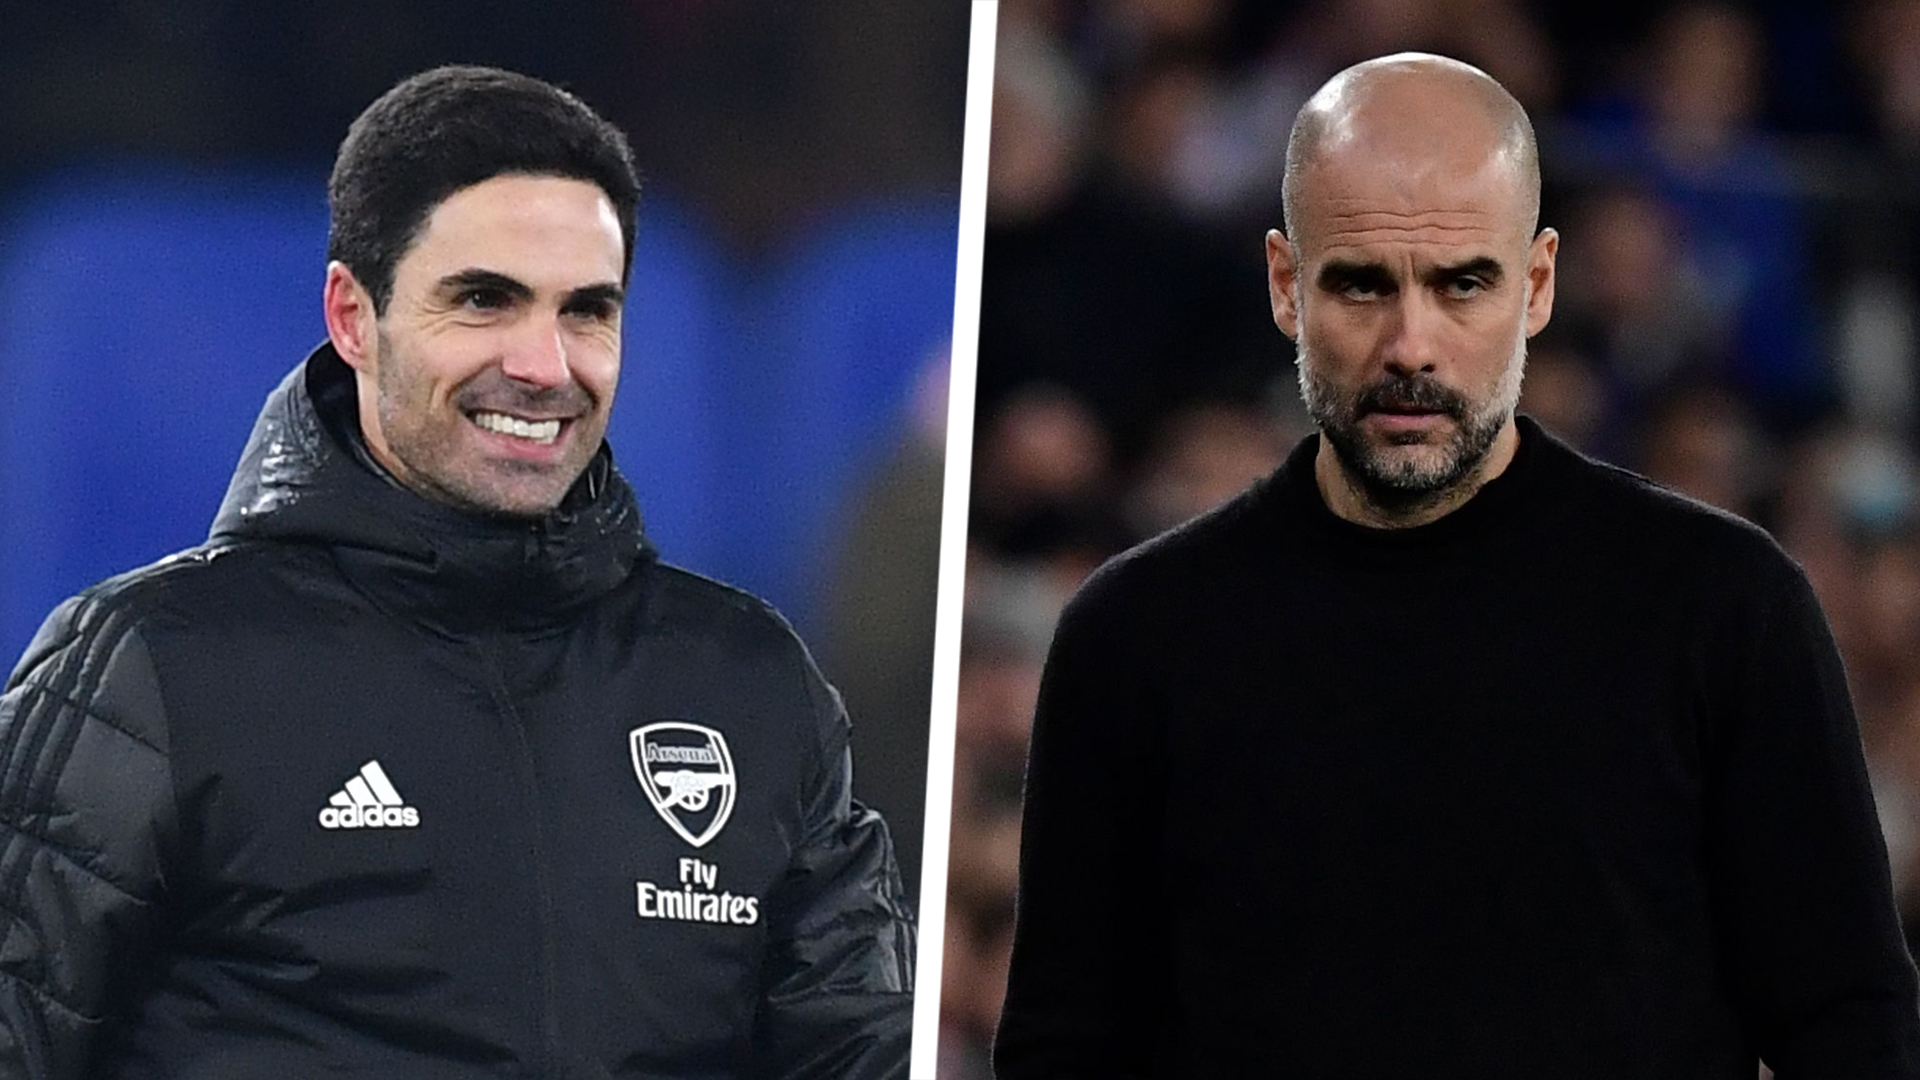 Pep Guardiola and Mikel Arteta